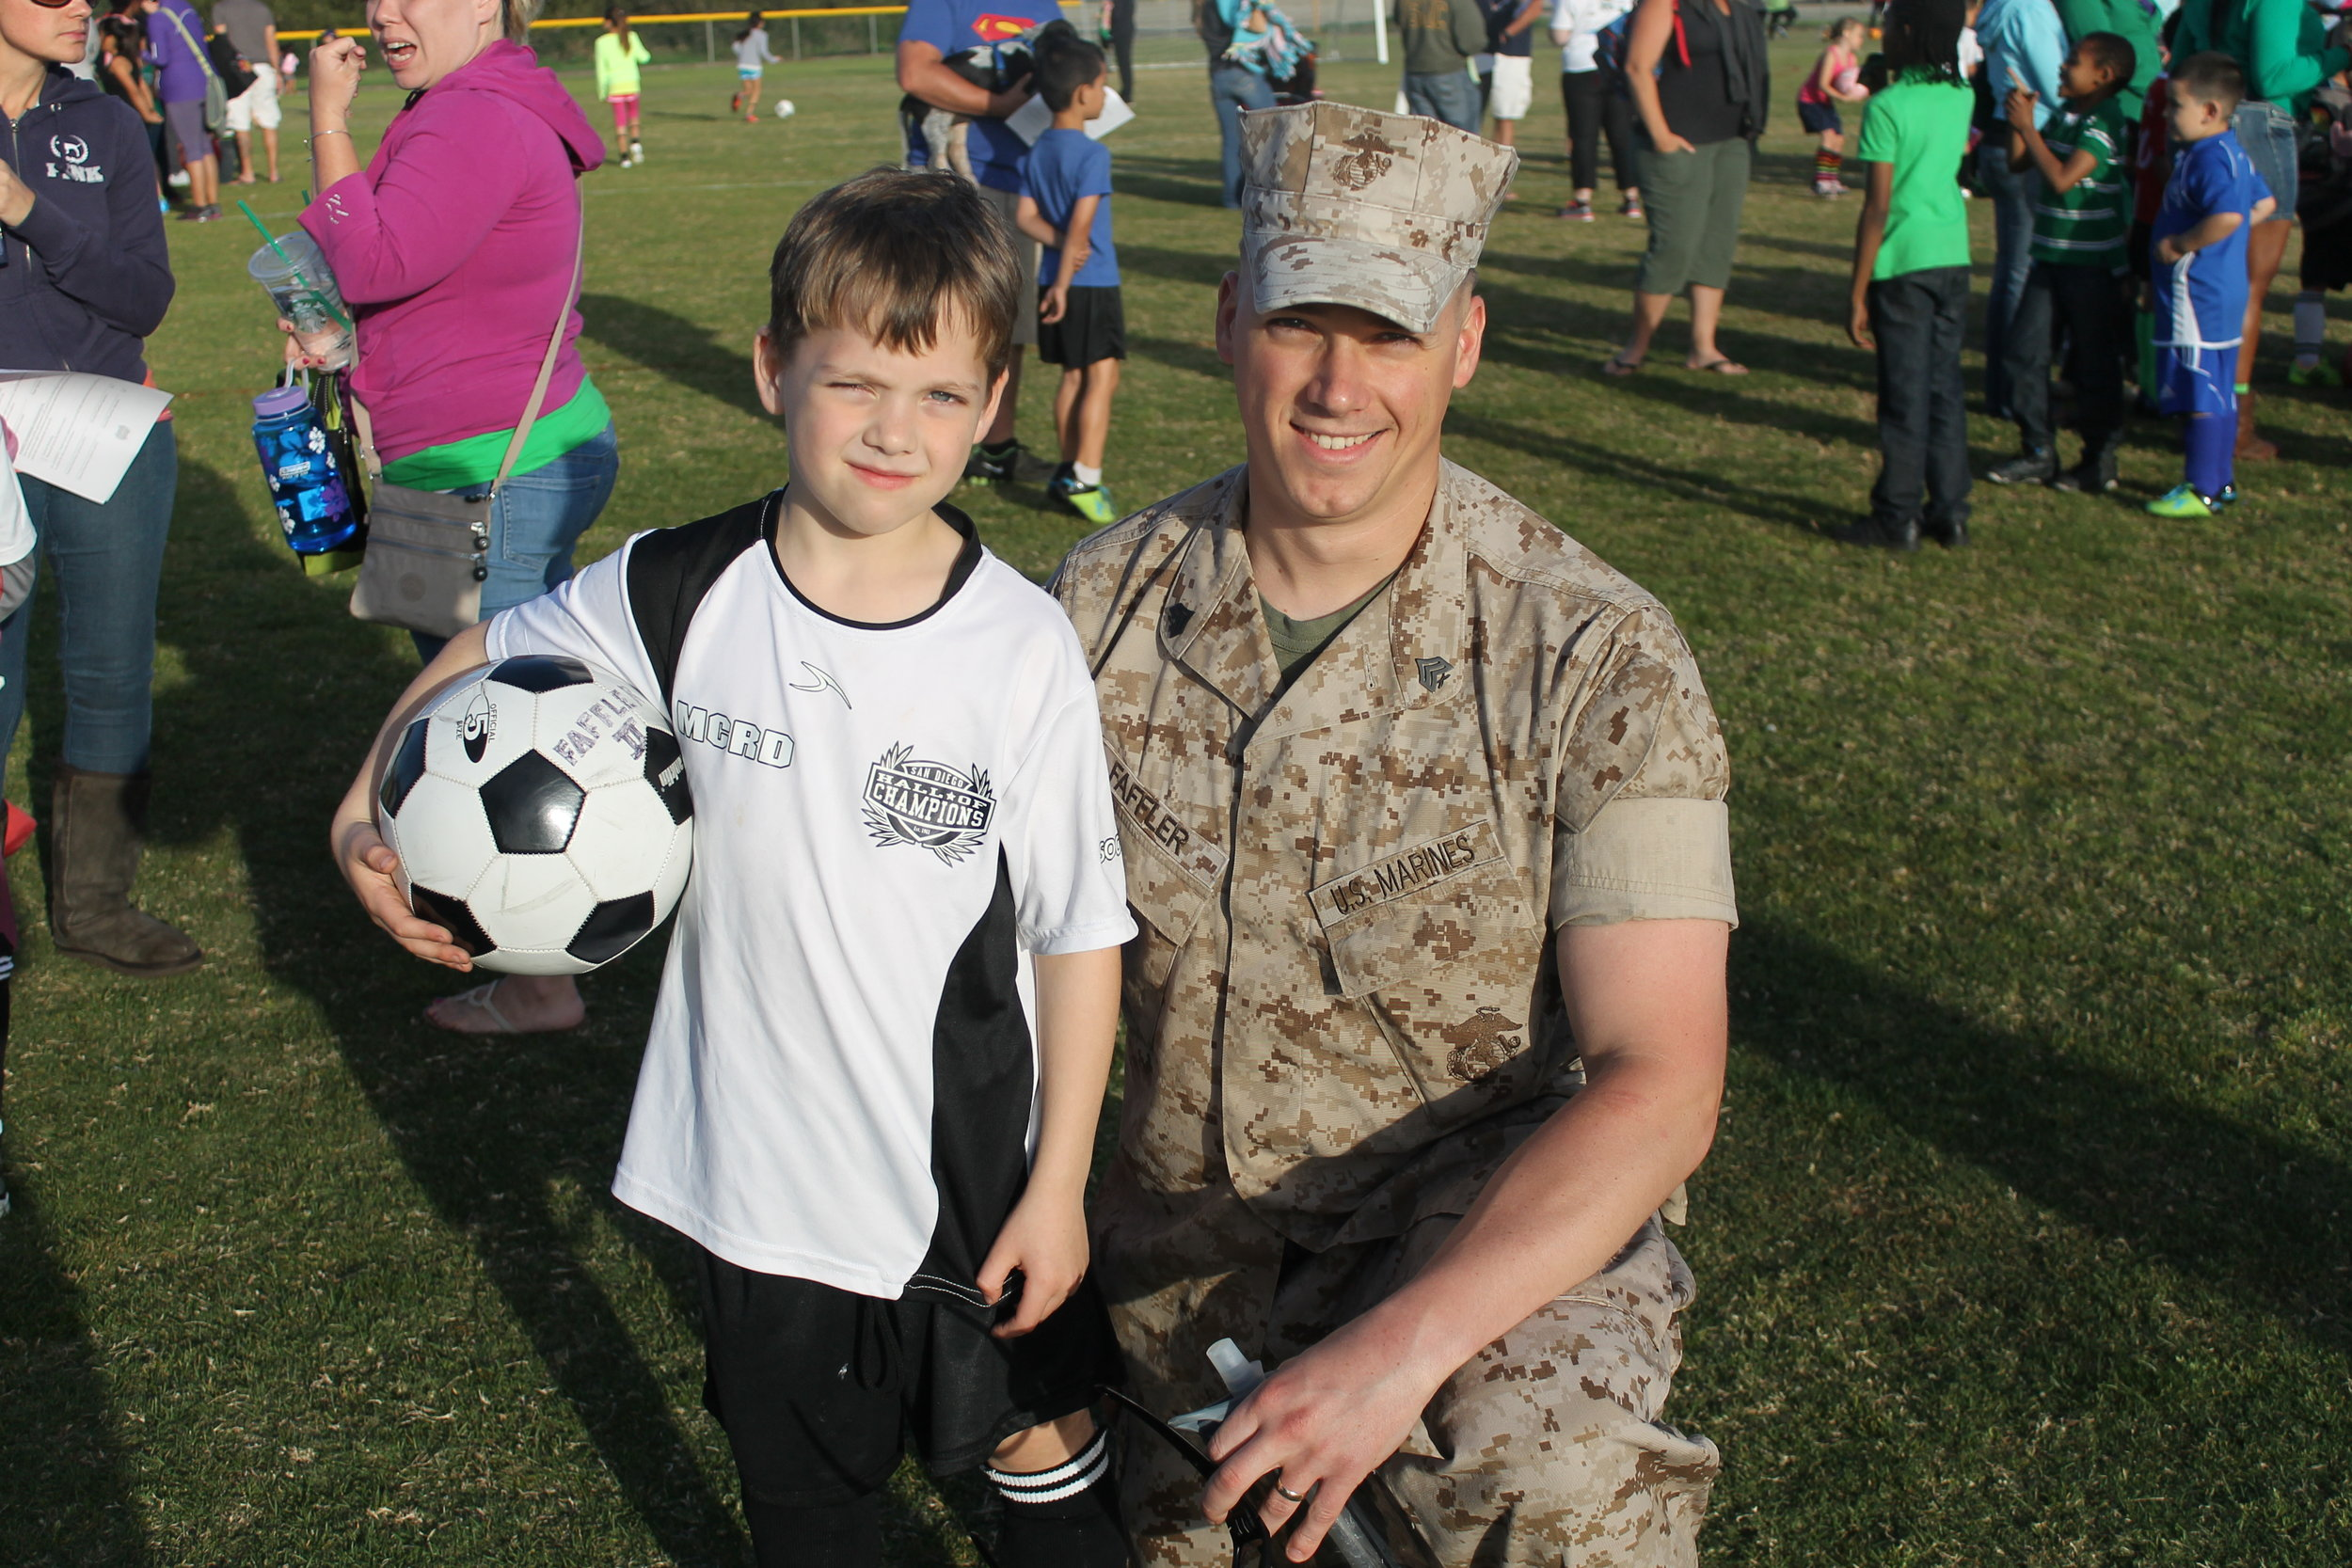 TOGETHER - The San Diego Sockers & San Diego Sports Association are excited to join forces so that hundreds of Military families and youth have the opportunity to participate in structured youth soccer leagues, camps, clinics, and training sessions year over year.